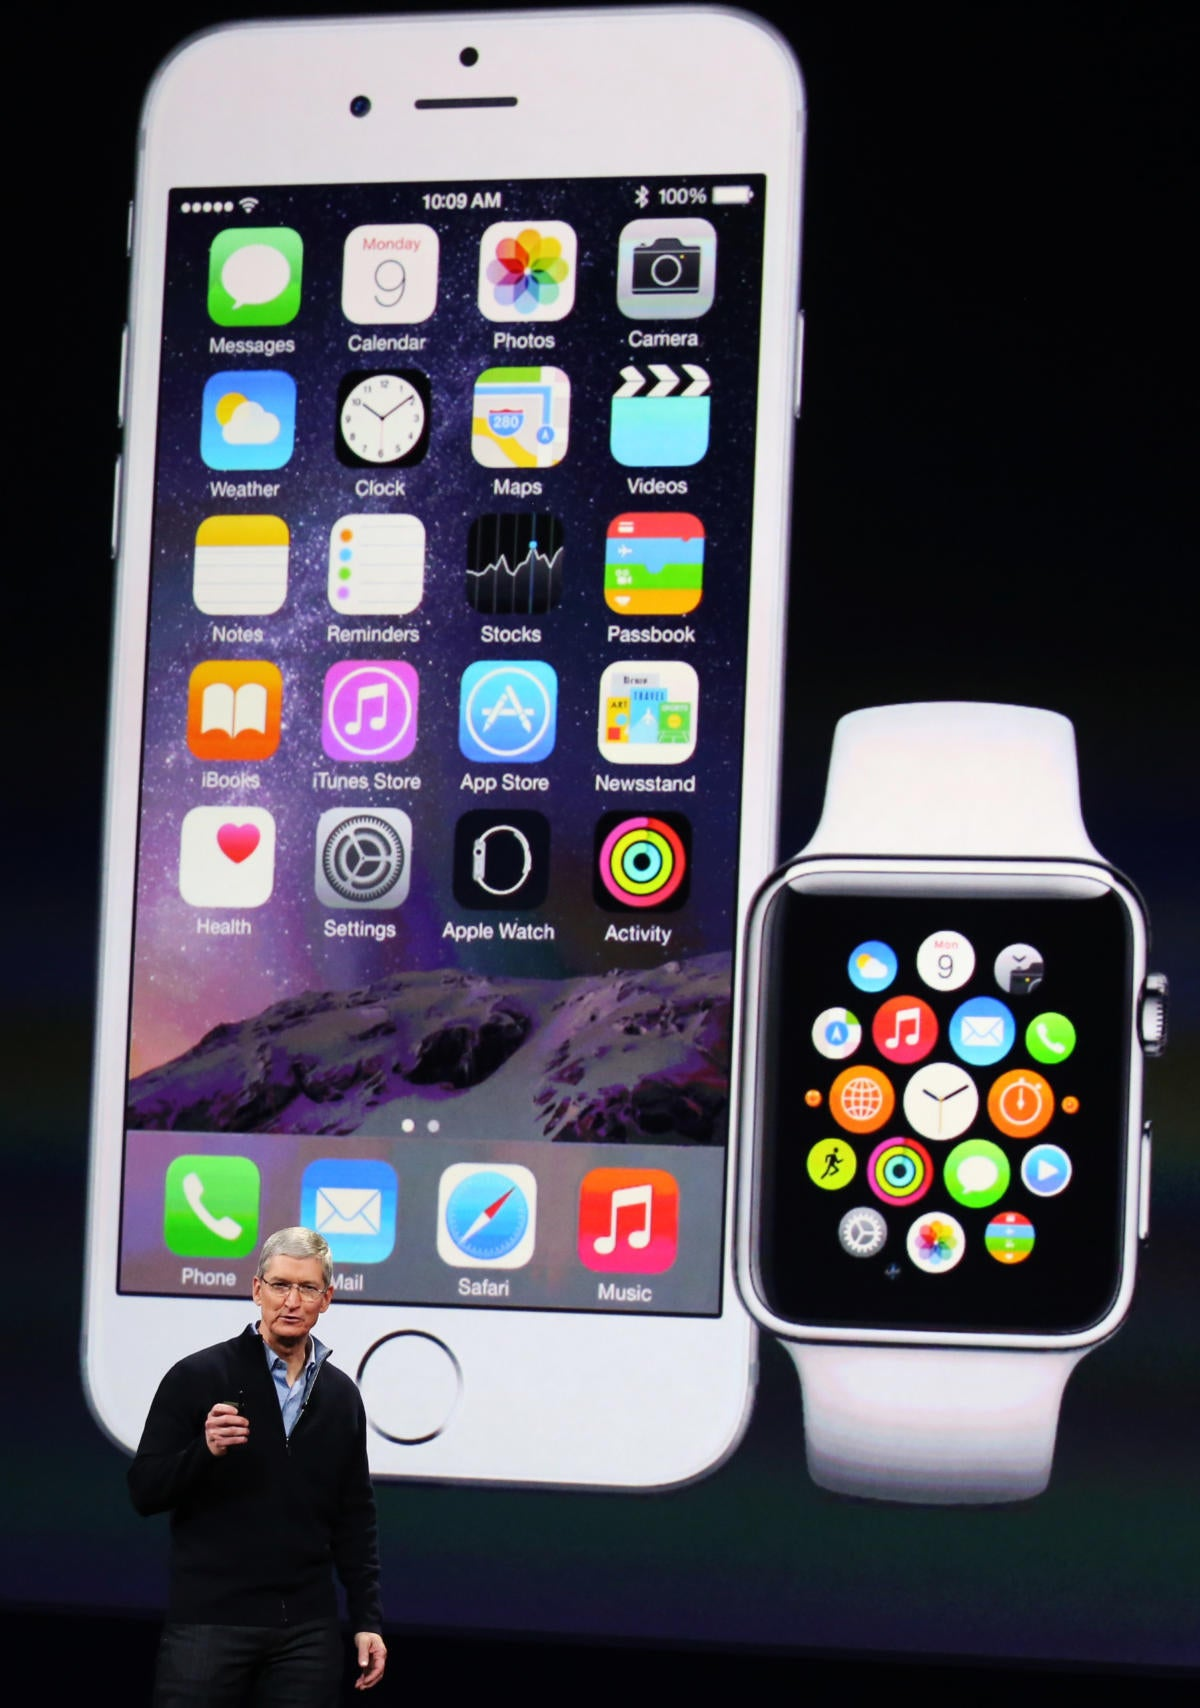 iphone 6 plus apple watch